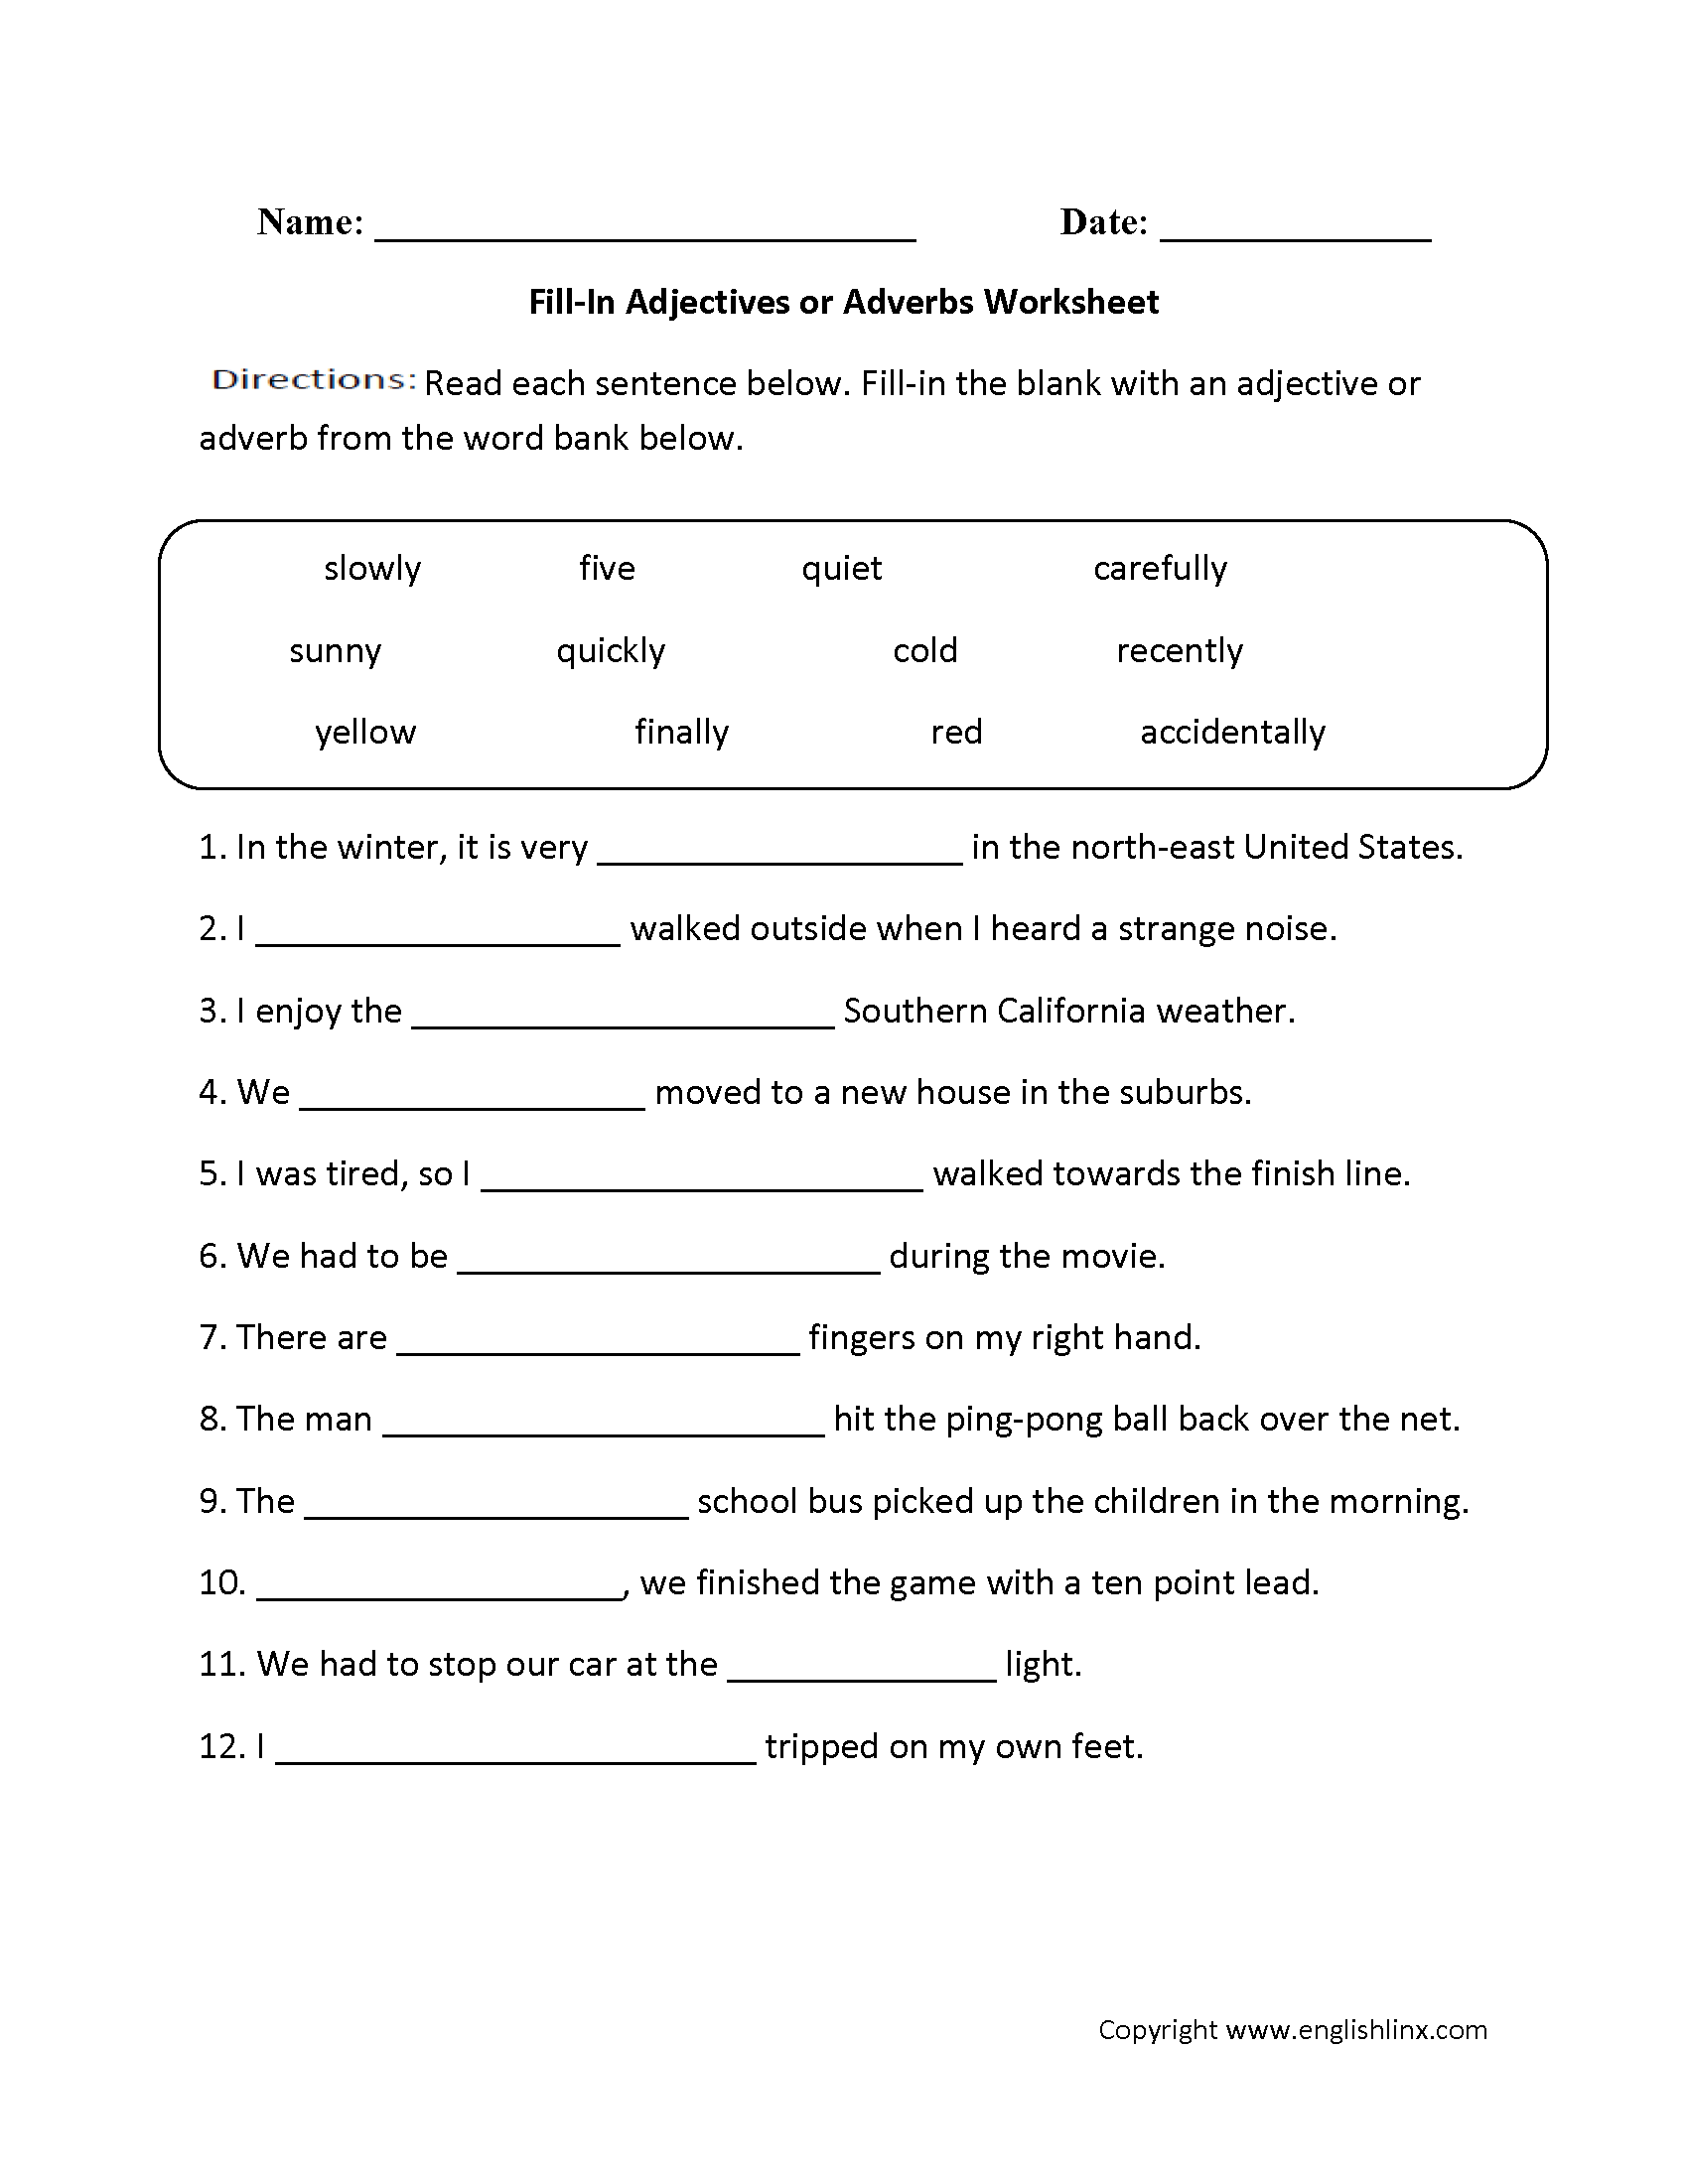 worksheet Adverbs Worksheet Year 2 adjectives or adverbs worksheets fill in worksheet